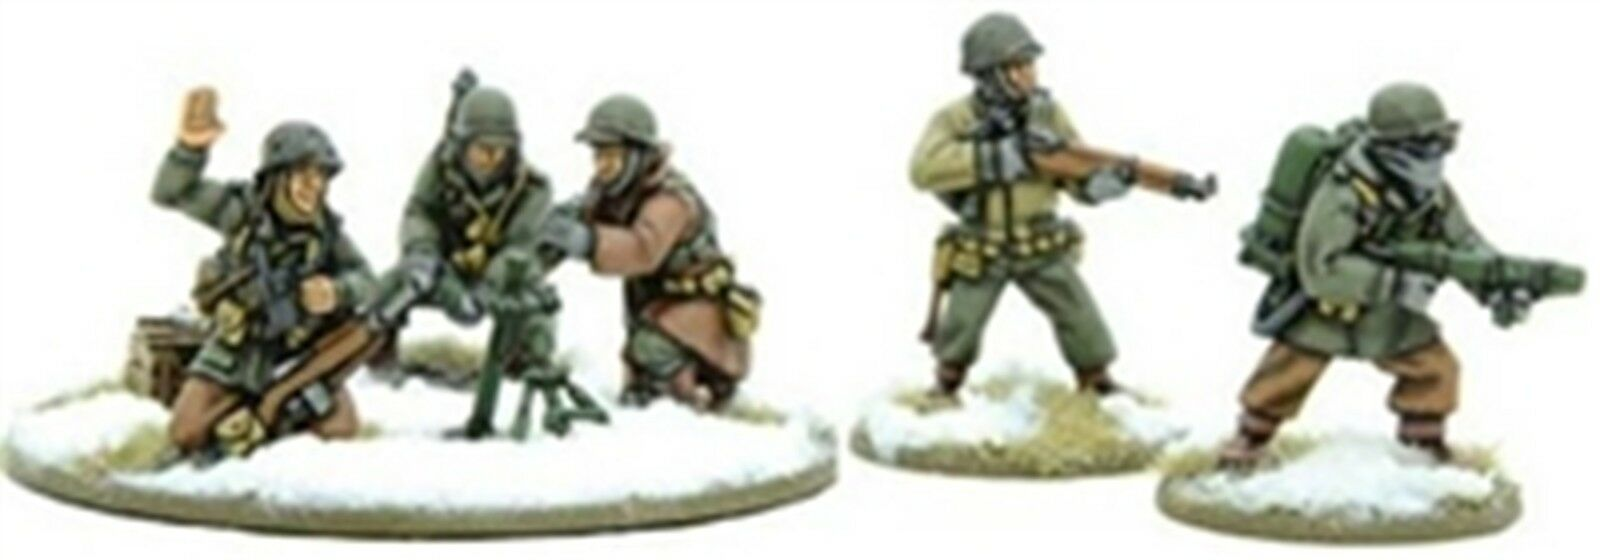 NEW BOLT ACTION MINIATURE US ARMY FLAME & LT MORTAR WINTER WARS GAMES WGB-WAI-24